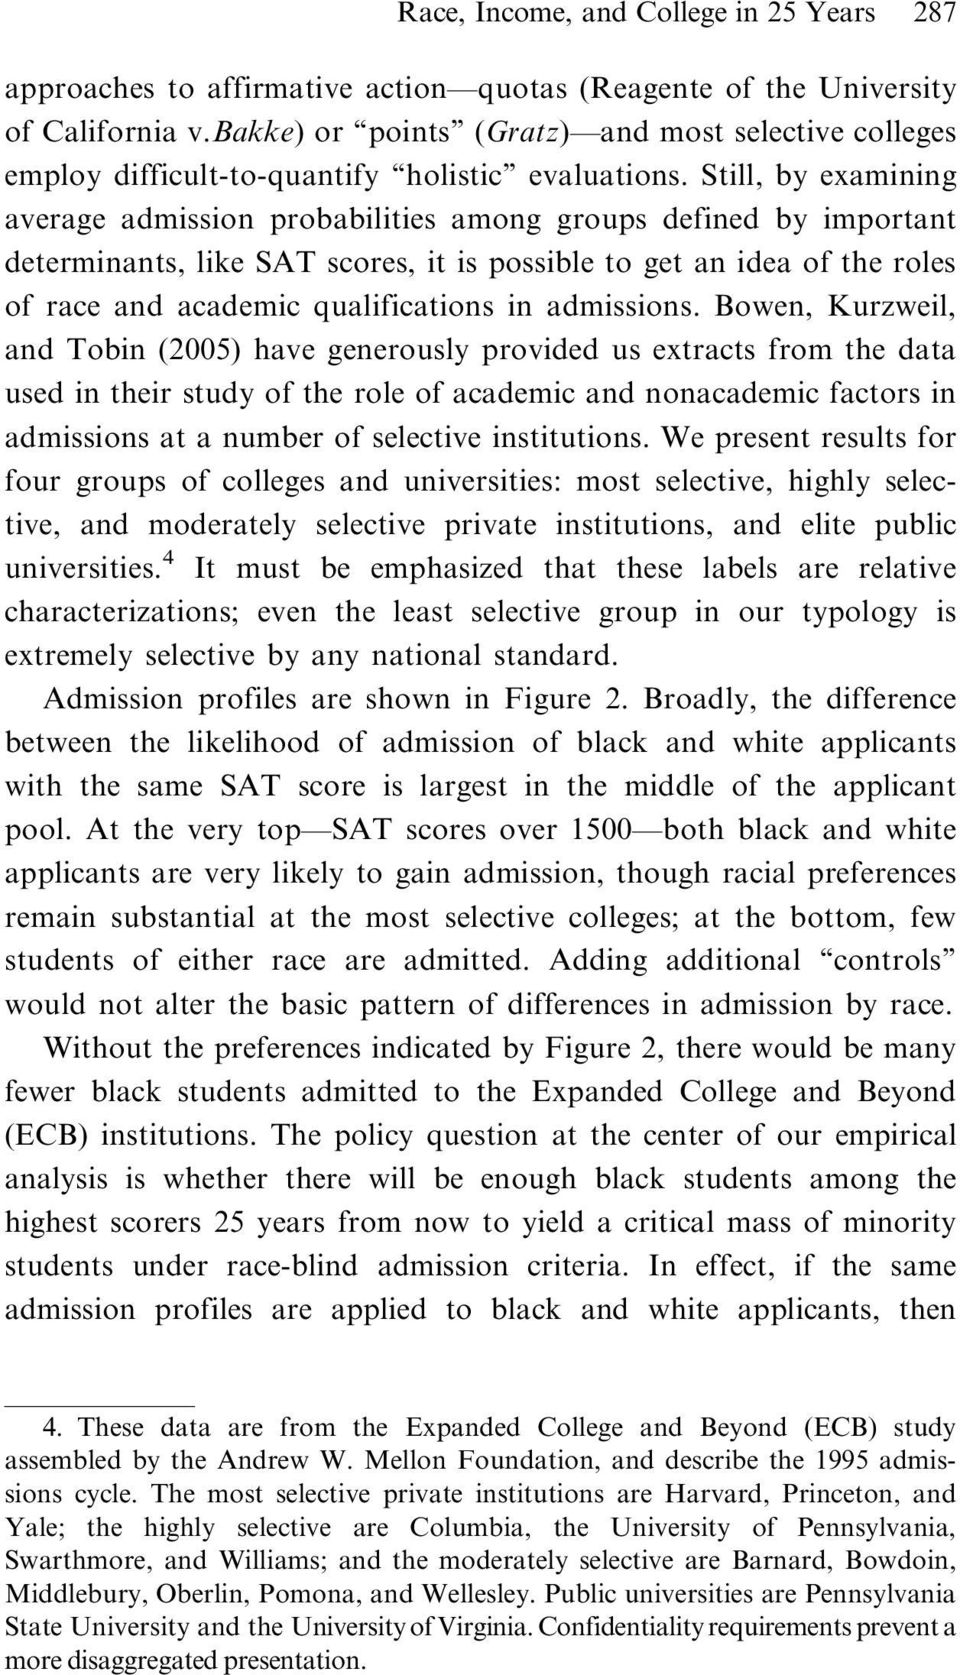 Still, by examining average admission probabilities among groups defined by important determinants, like SAT scores, it is possible to get an idea of the roles of race and academic qualifications in